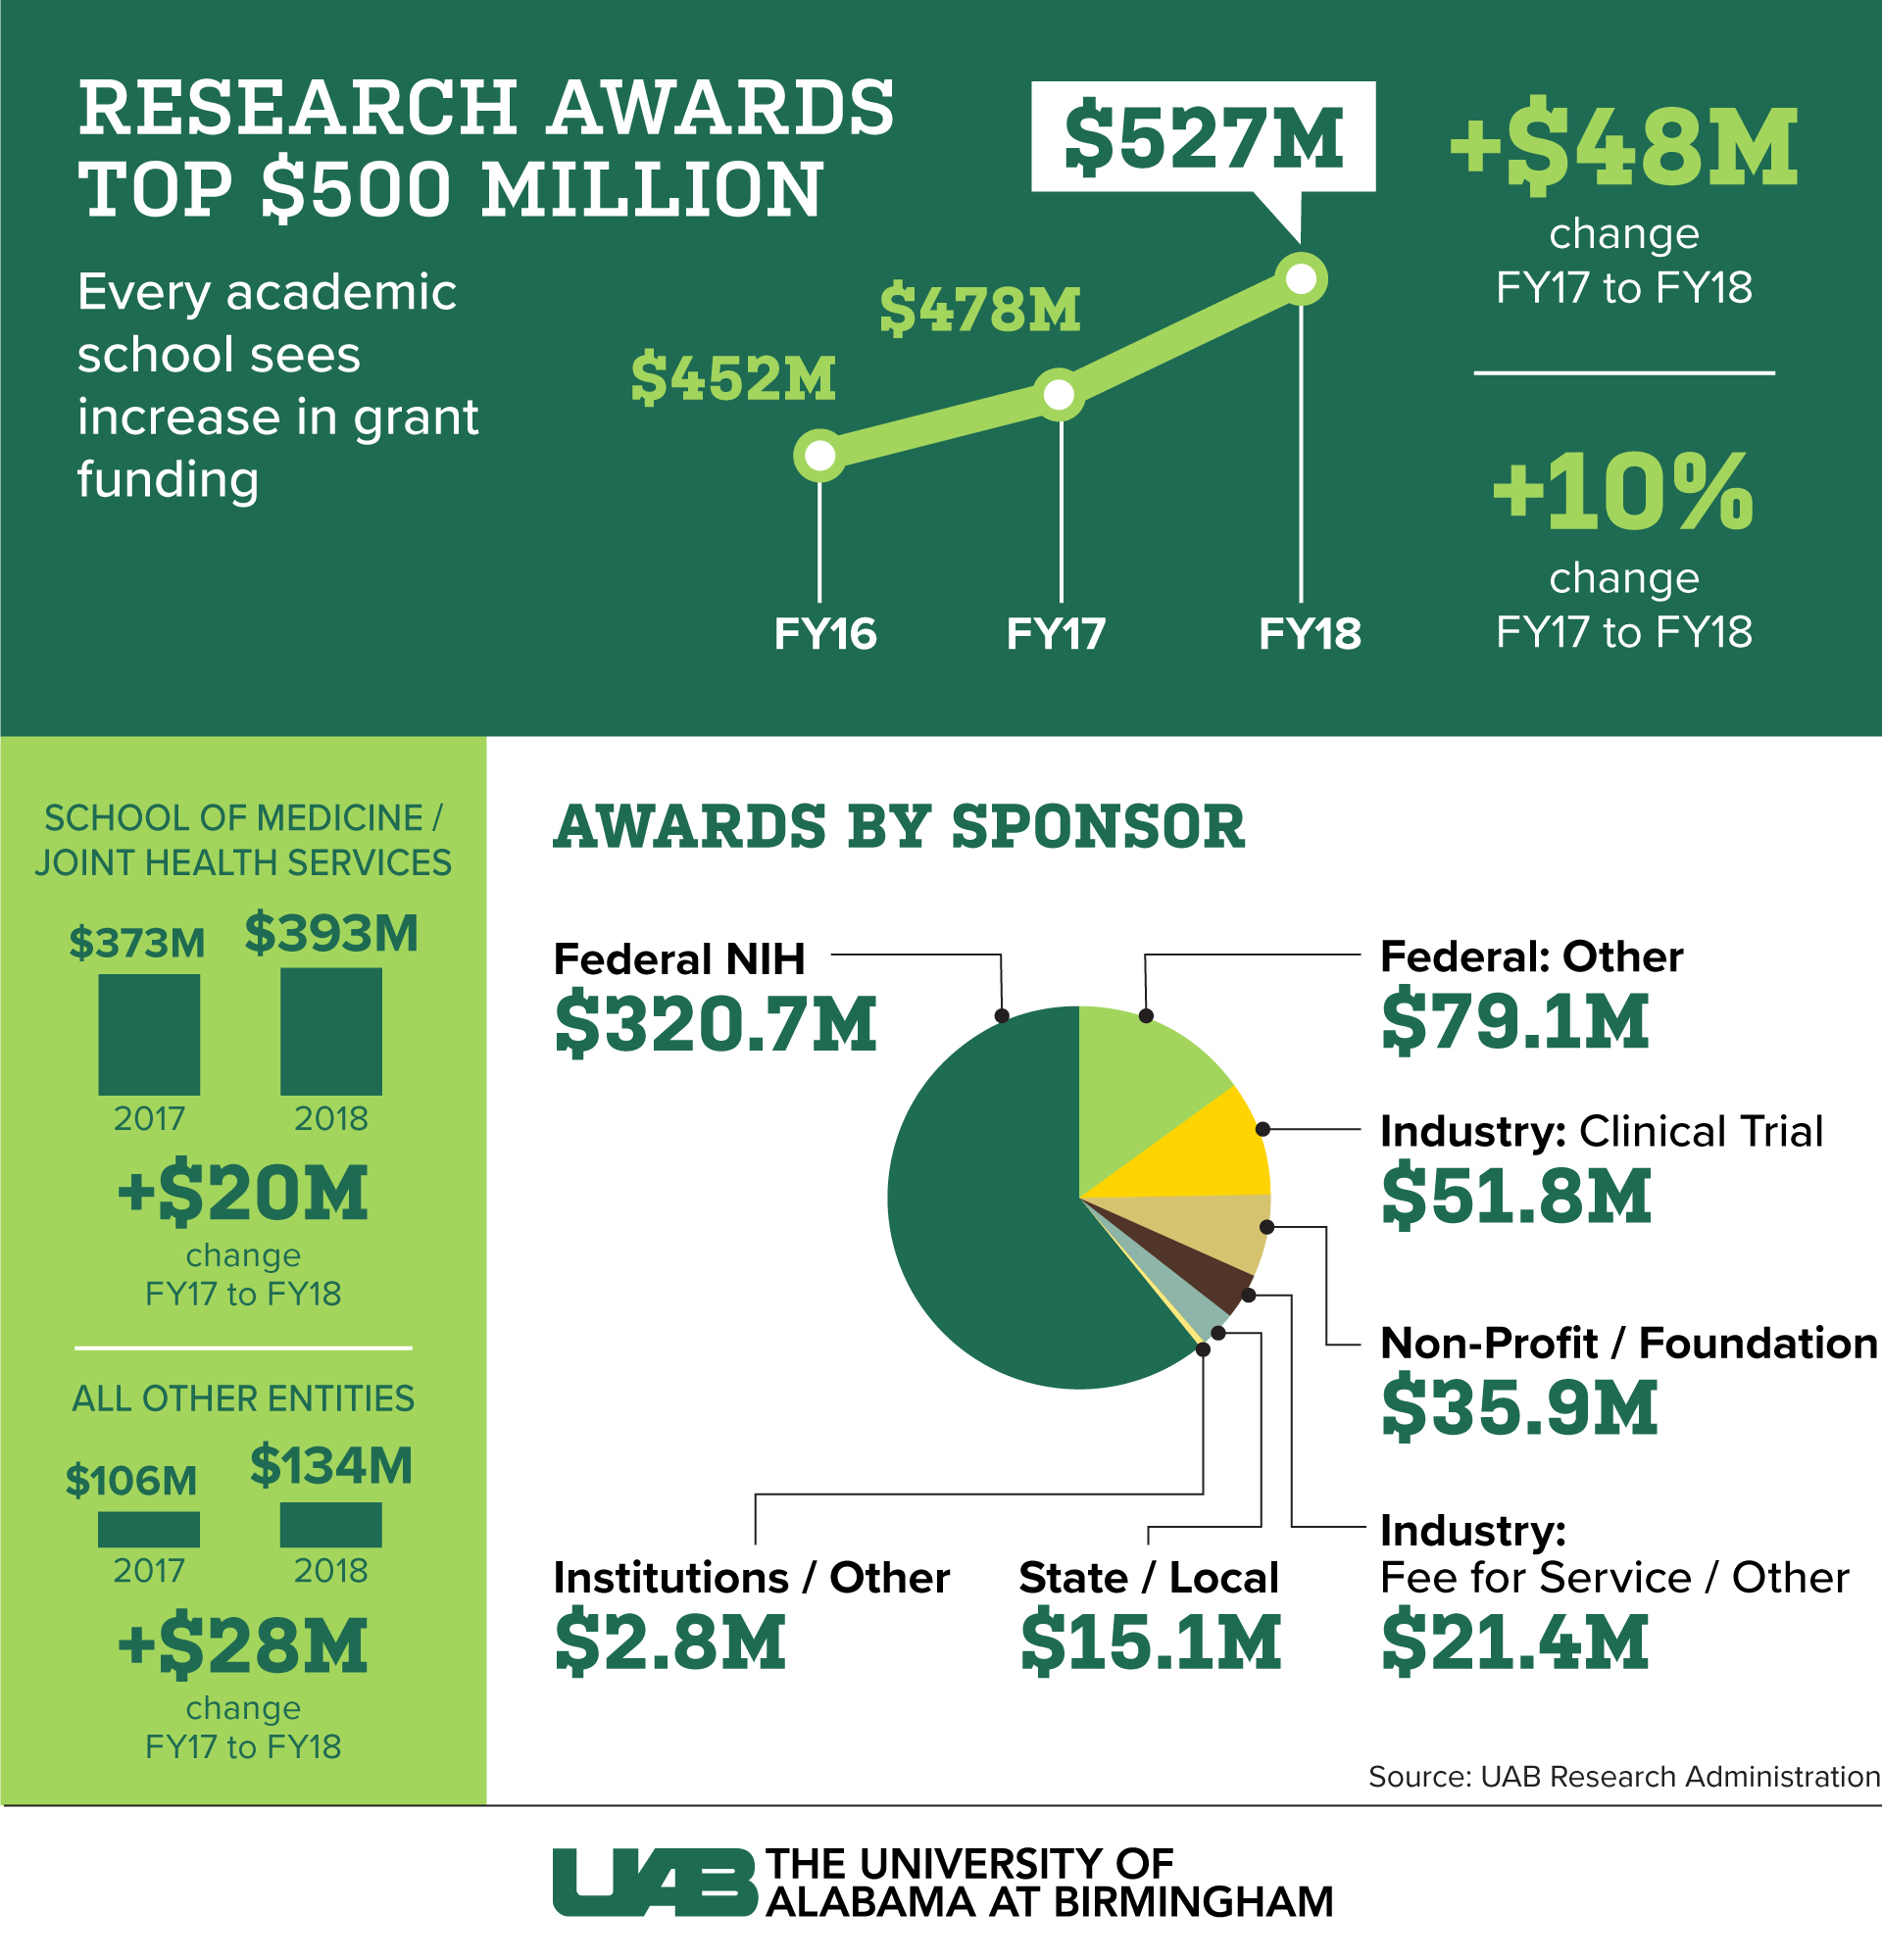 Research Funding totals